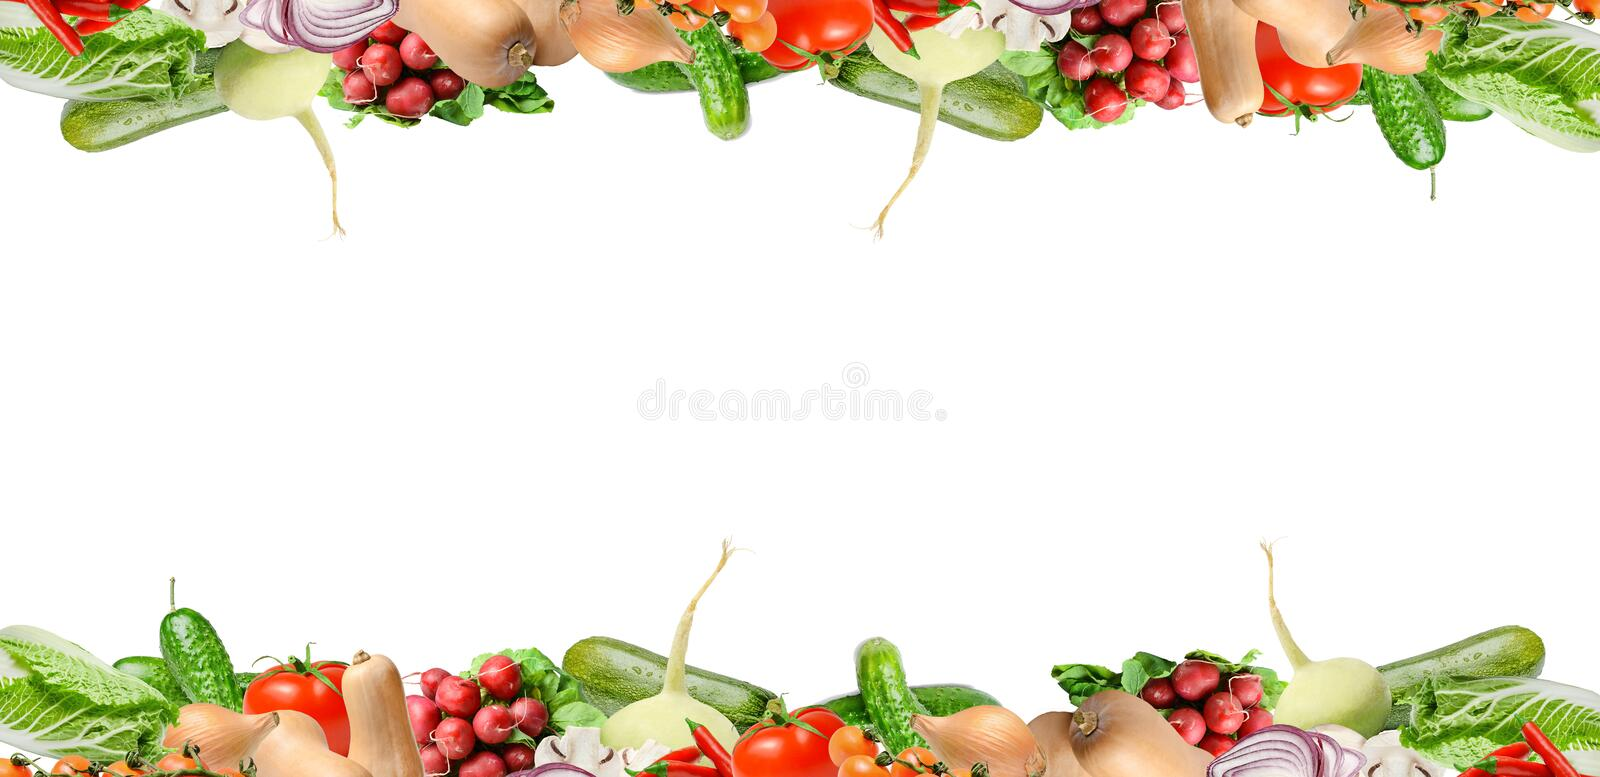 Composition with various types of vegetables in the upper and lower part of the frame. Isolated on white. Place for text. Composition with various types of stock photo